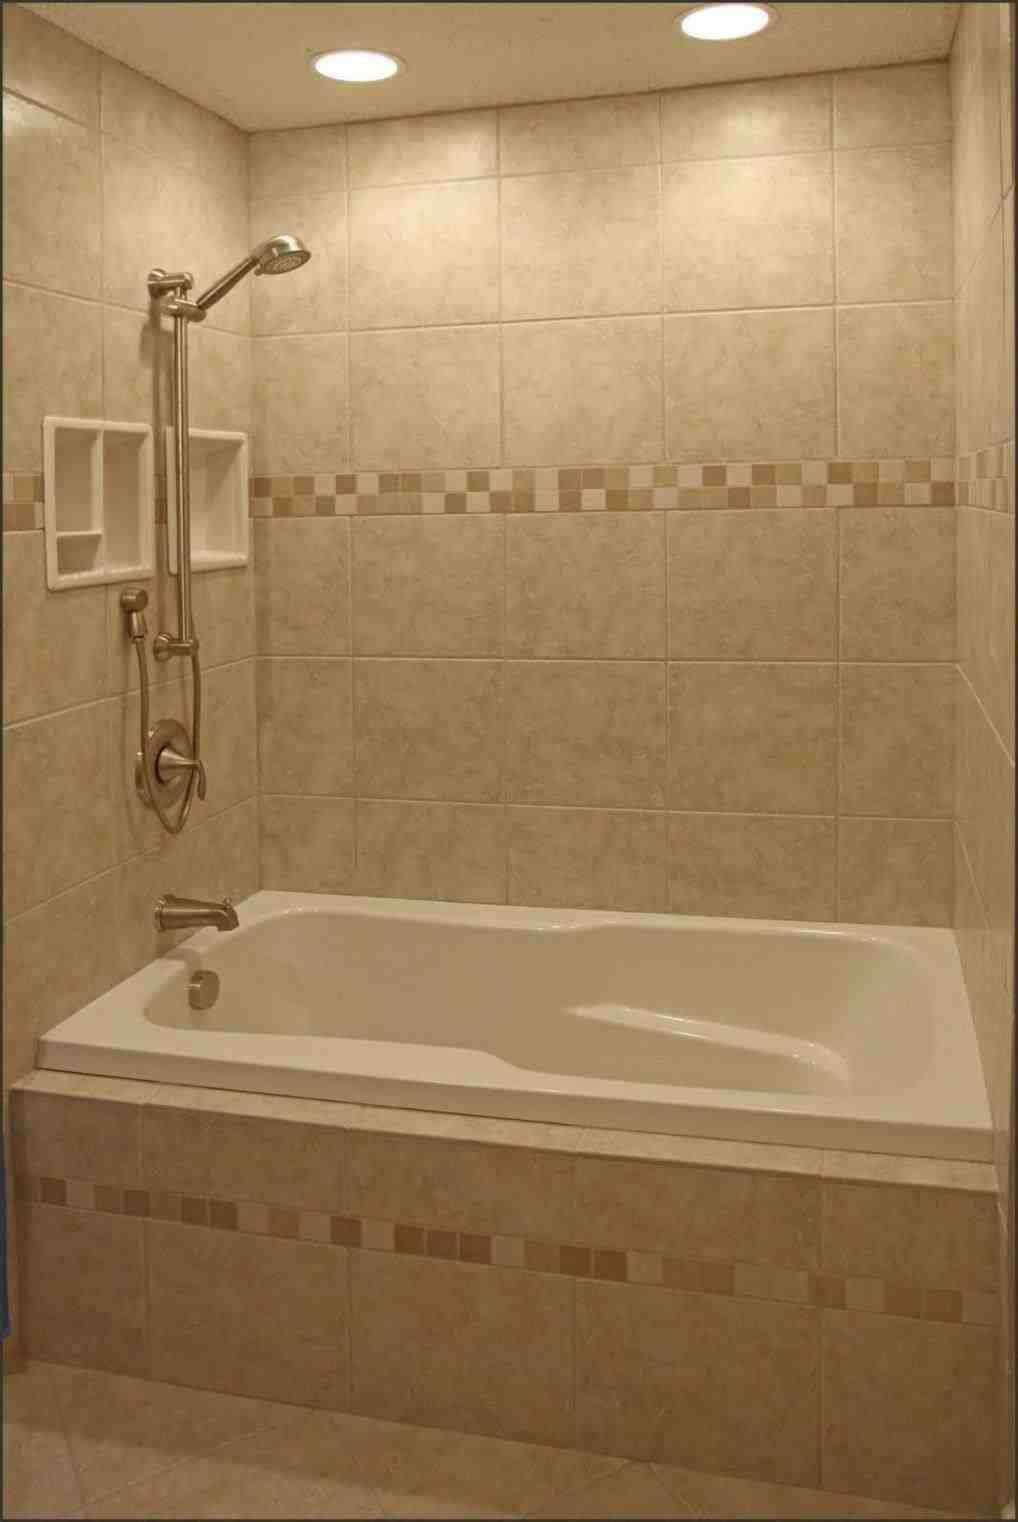 Whirlpool Tub With Shower Combo With Images Bathtub Tile Bathroom Tile Designs Bathroom Tub Shower Combo